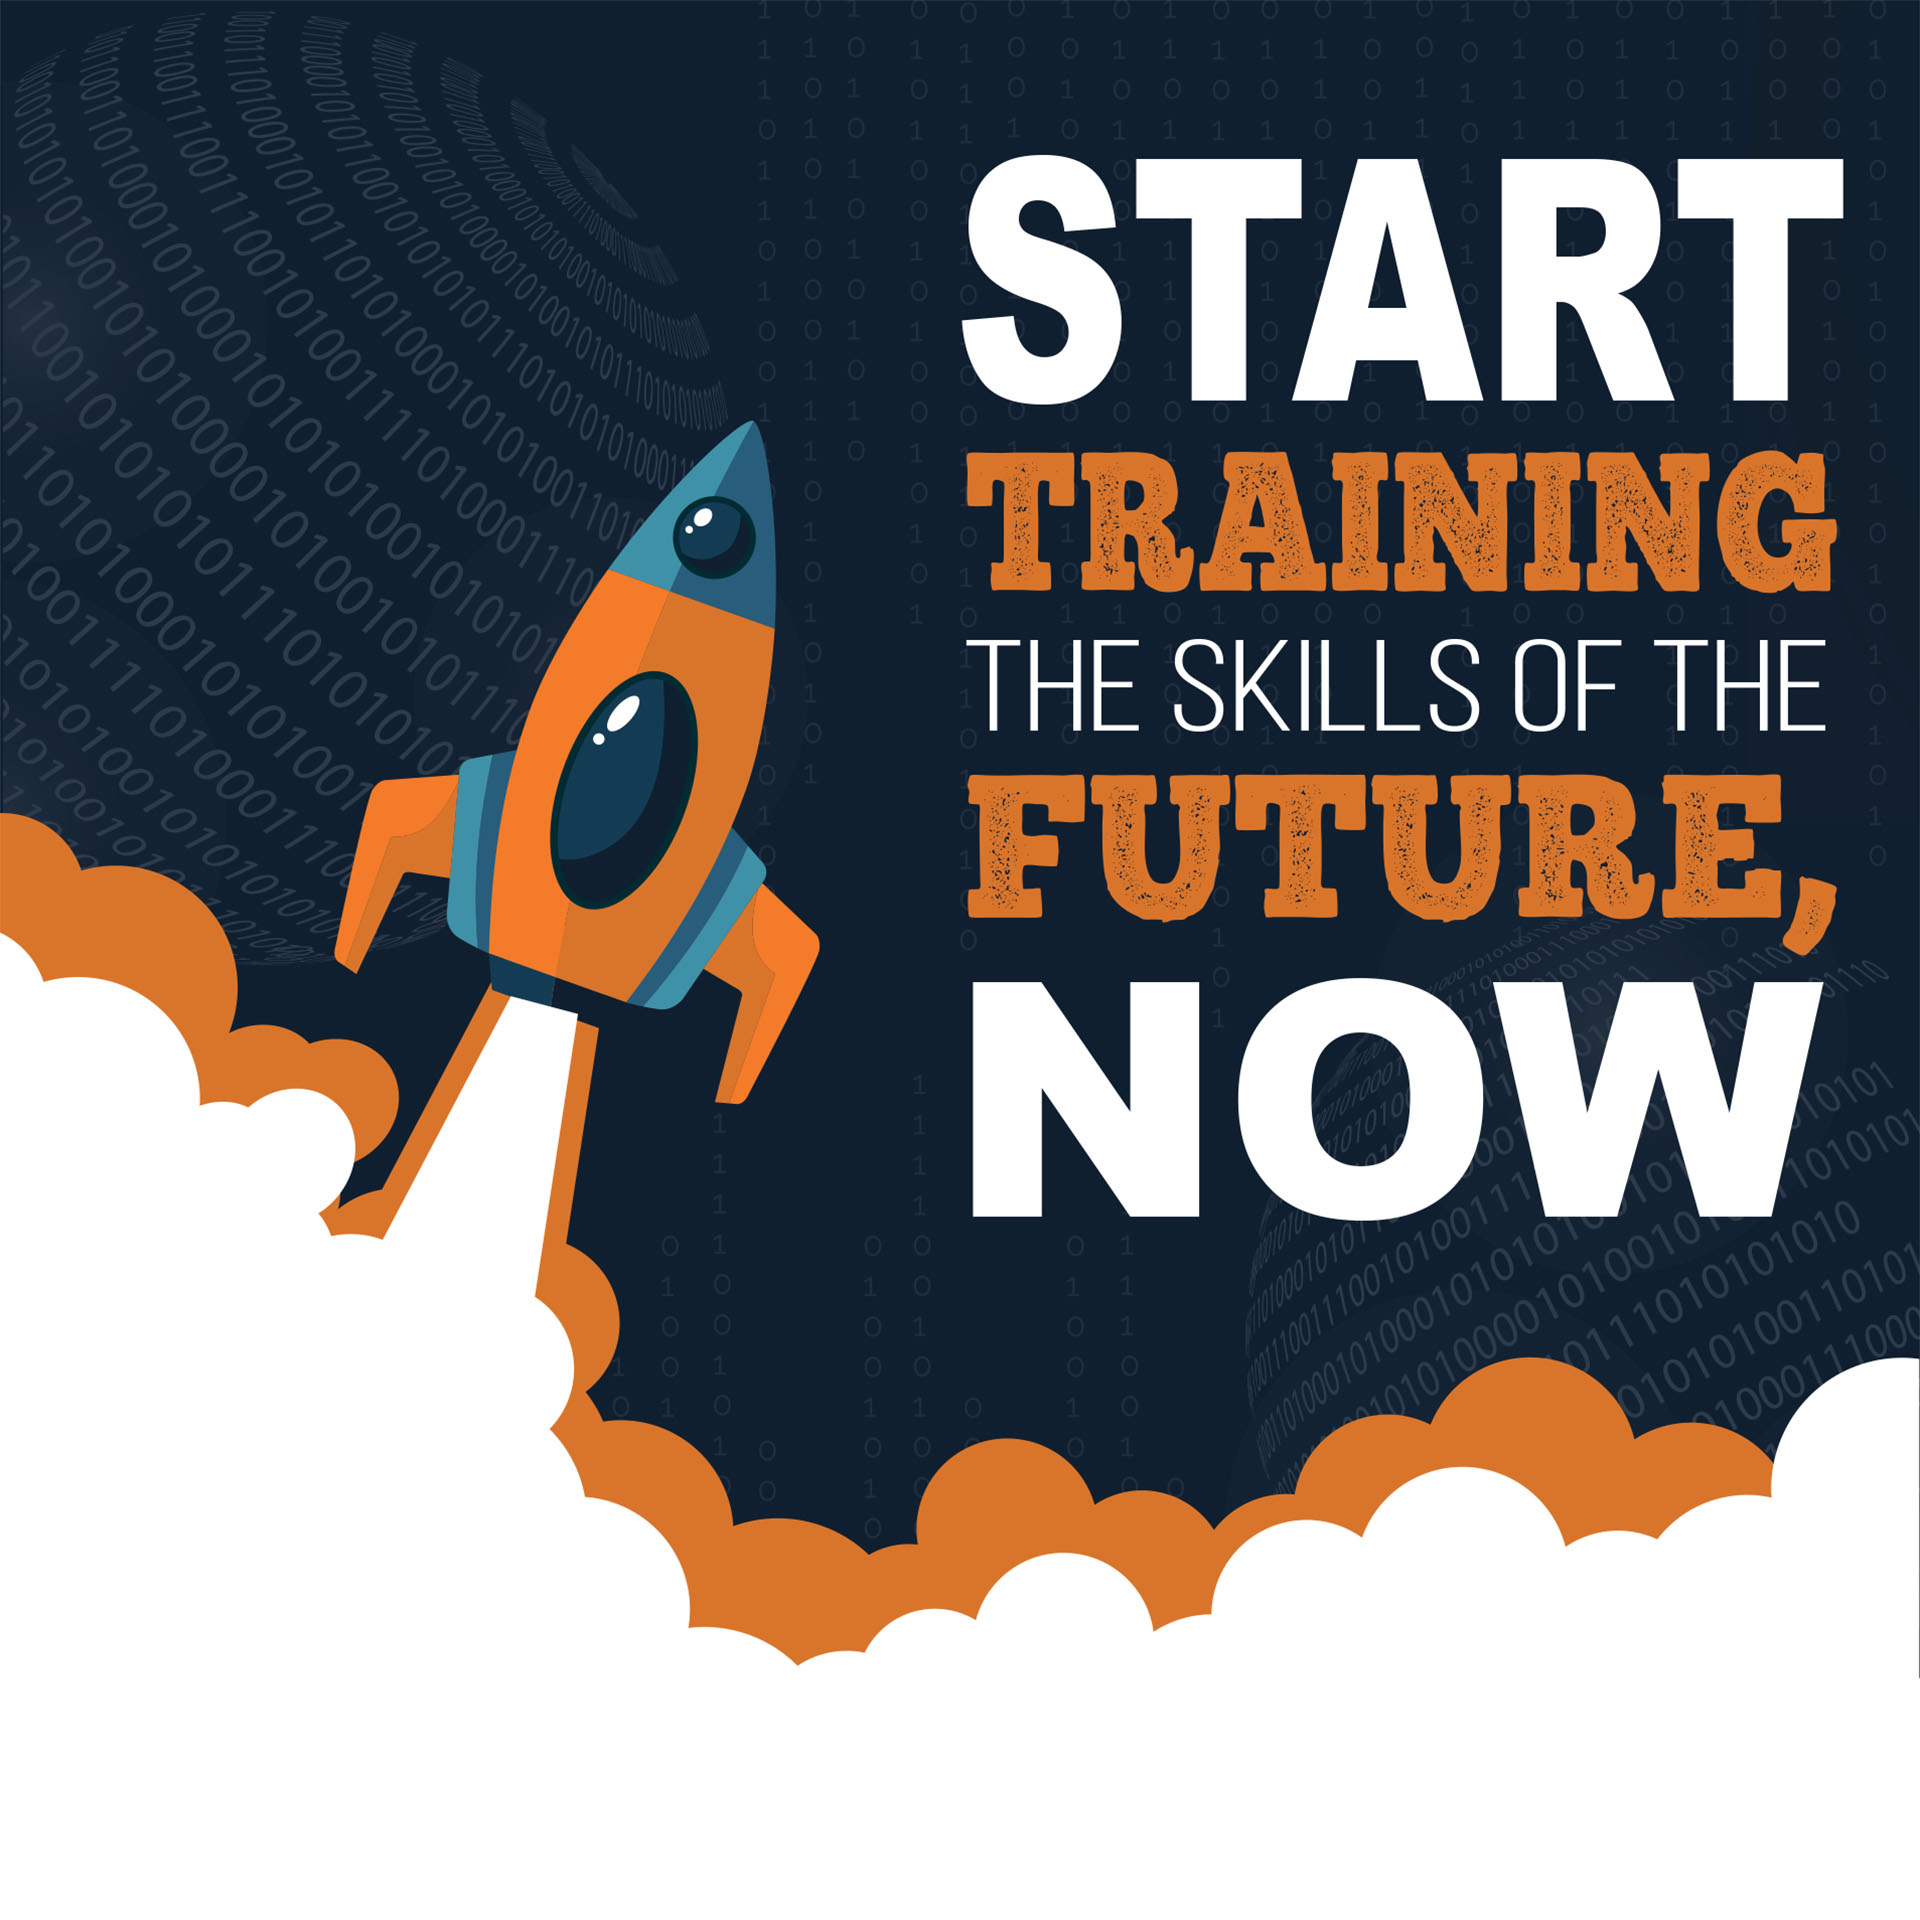 Start-training-the-skills-of-the-future-now.jpg